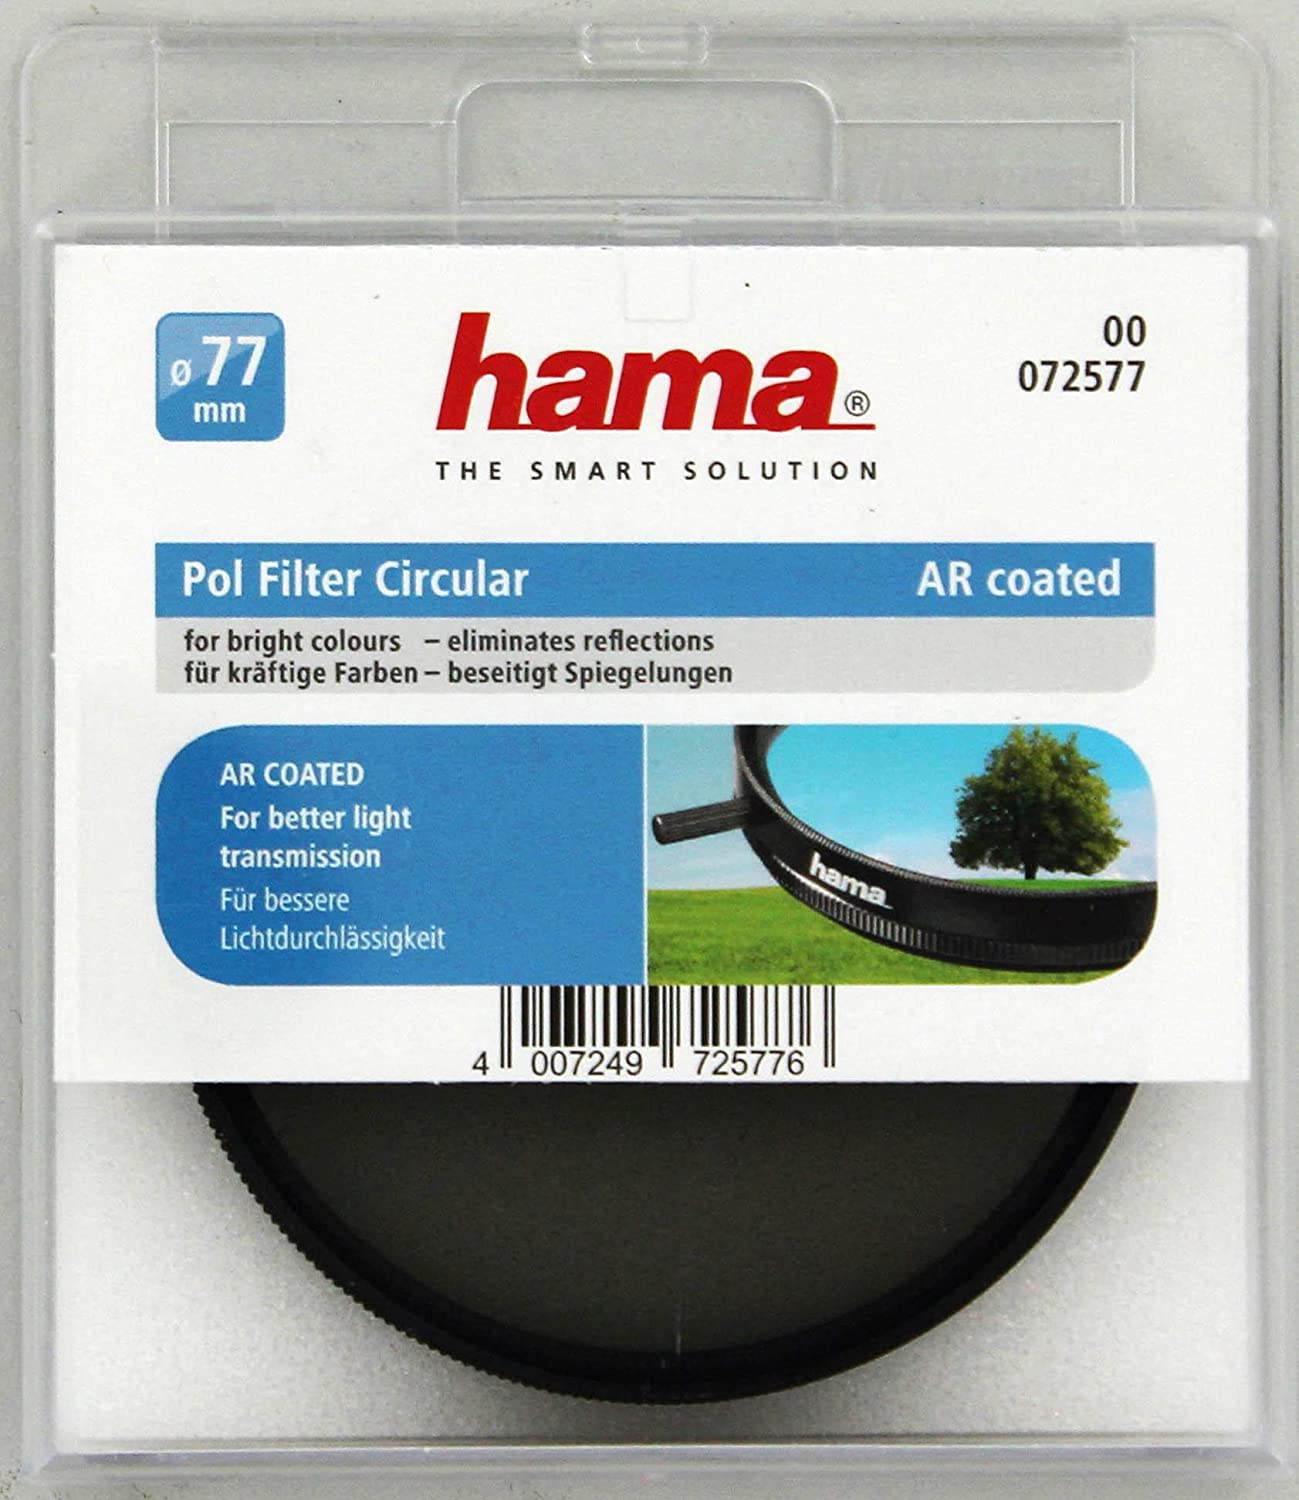 Hama Polarisations-Filter 52mm Pol-Filter C14 coated für DSLR DSLM Kamera Foto